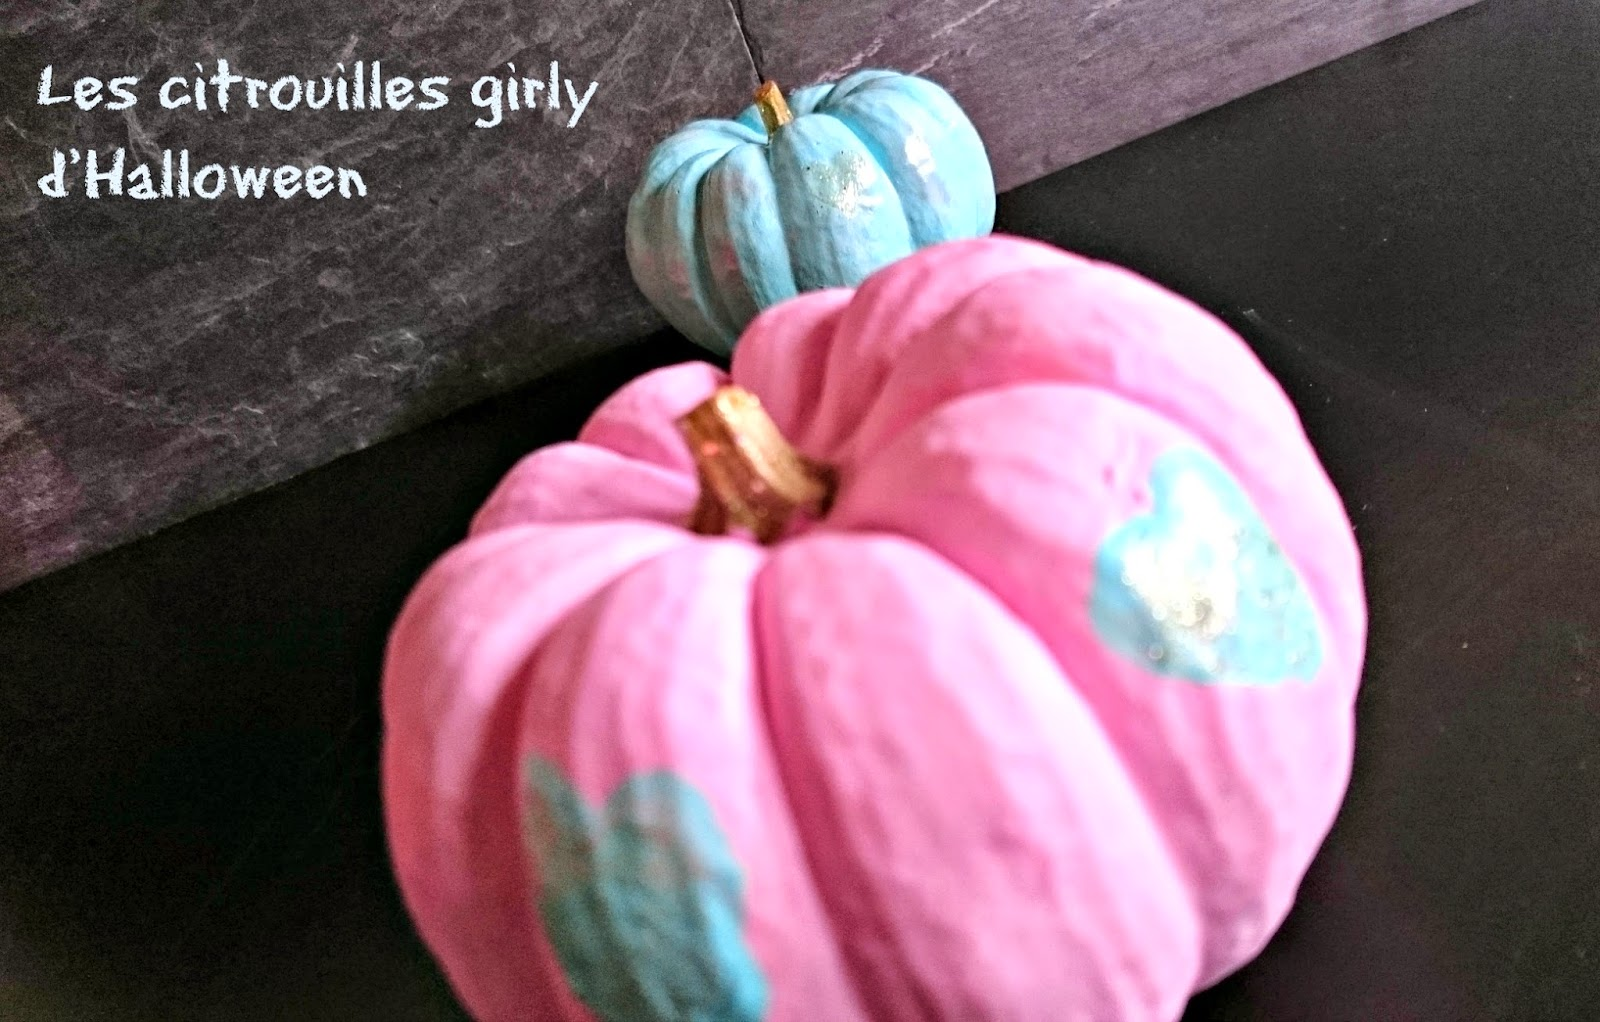 http://mynameisgeorges.blogspot.com/2014/10/diy-25-les-citrouilles-girly.html